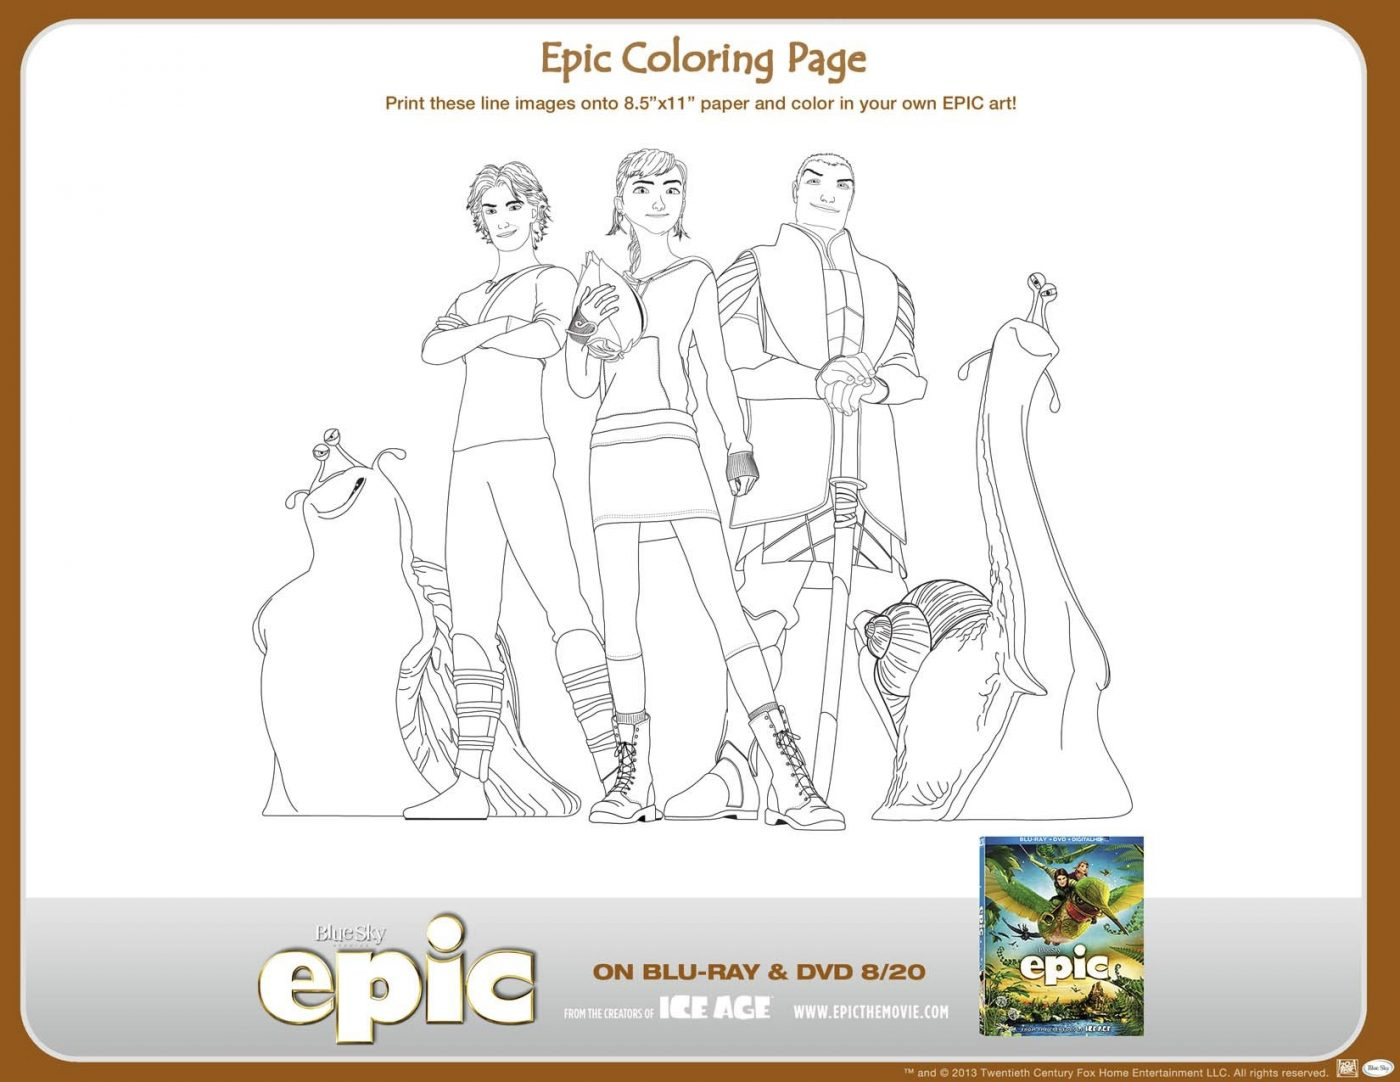 EPIC Coloring Page